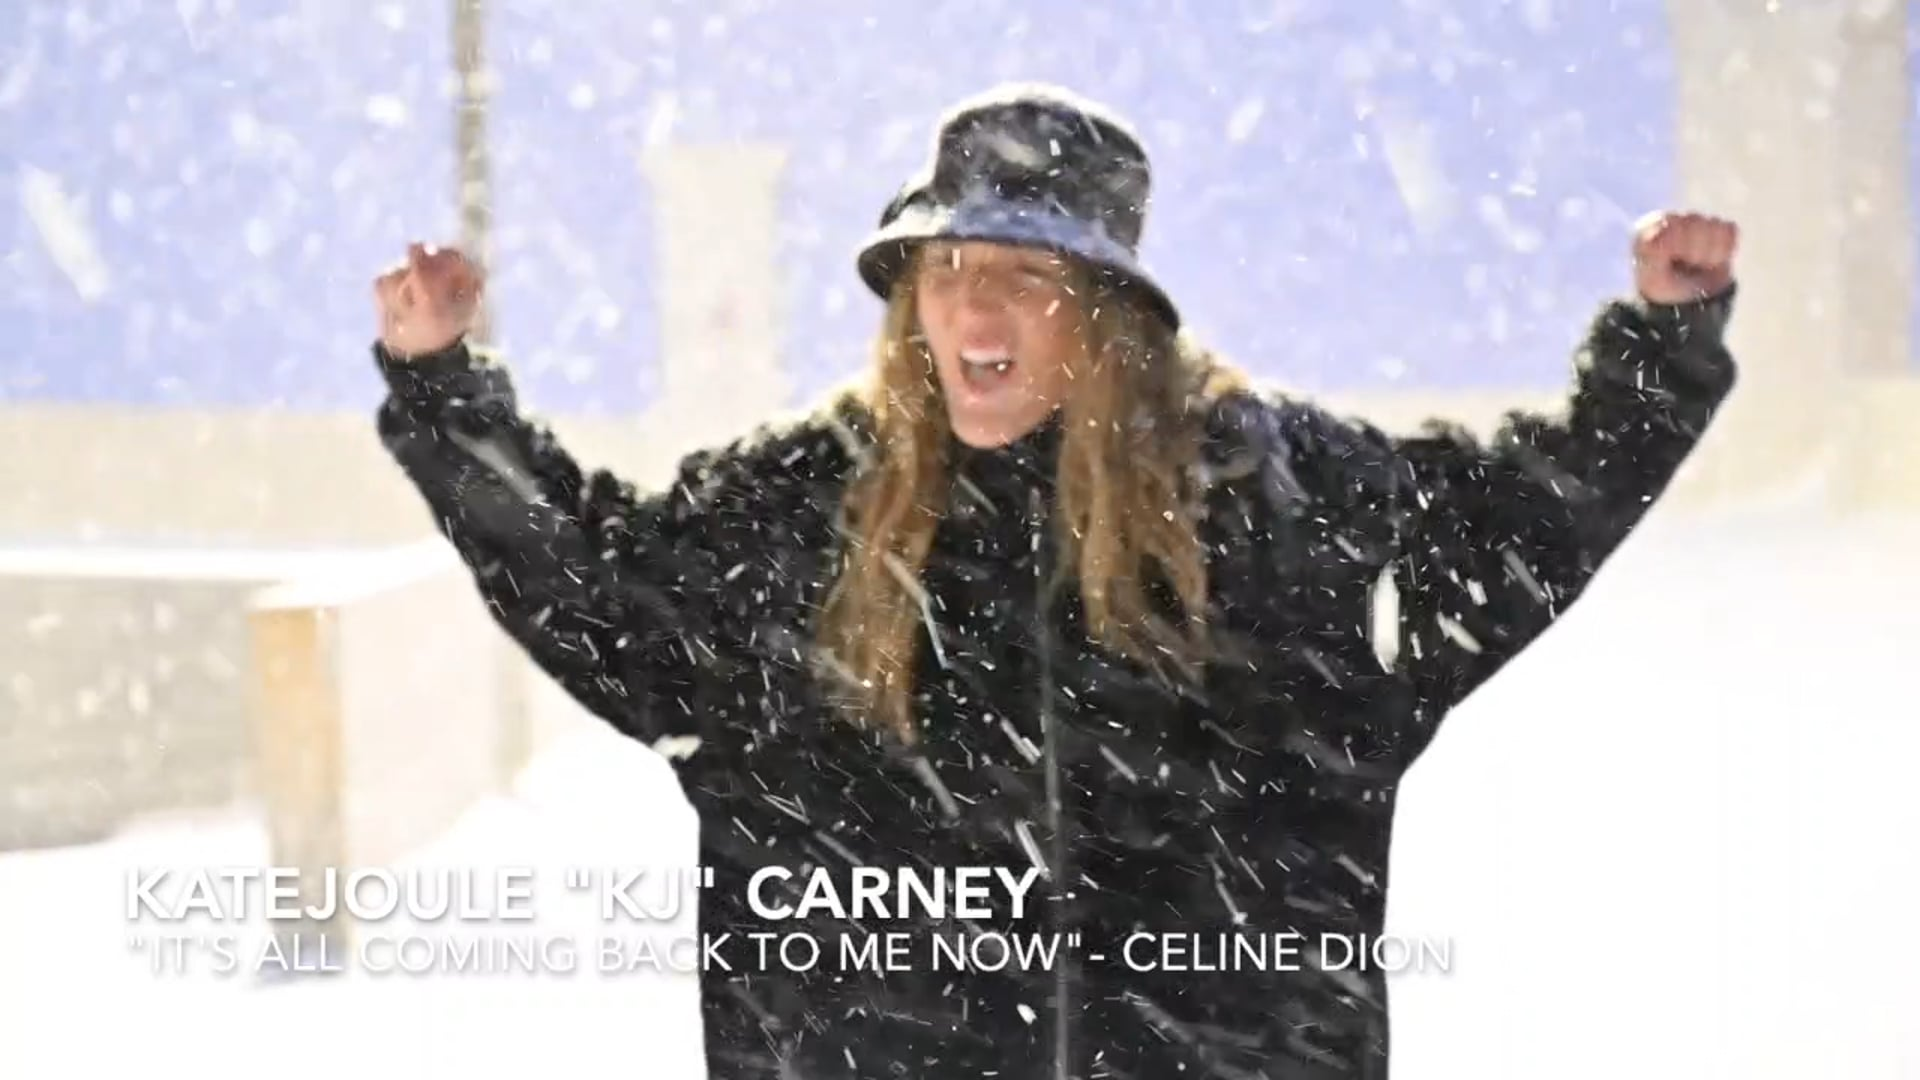 """""""It's All Coming Back to Me Now""""- Celine Dion Cut"""